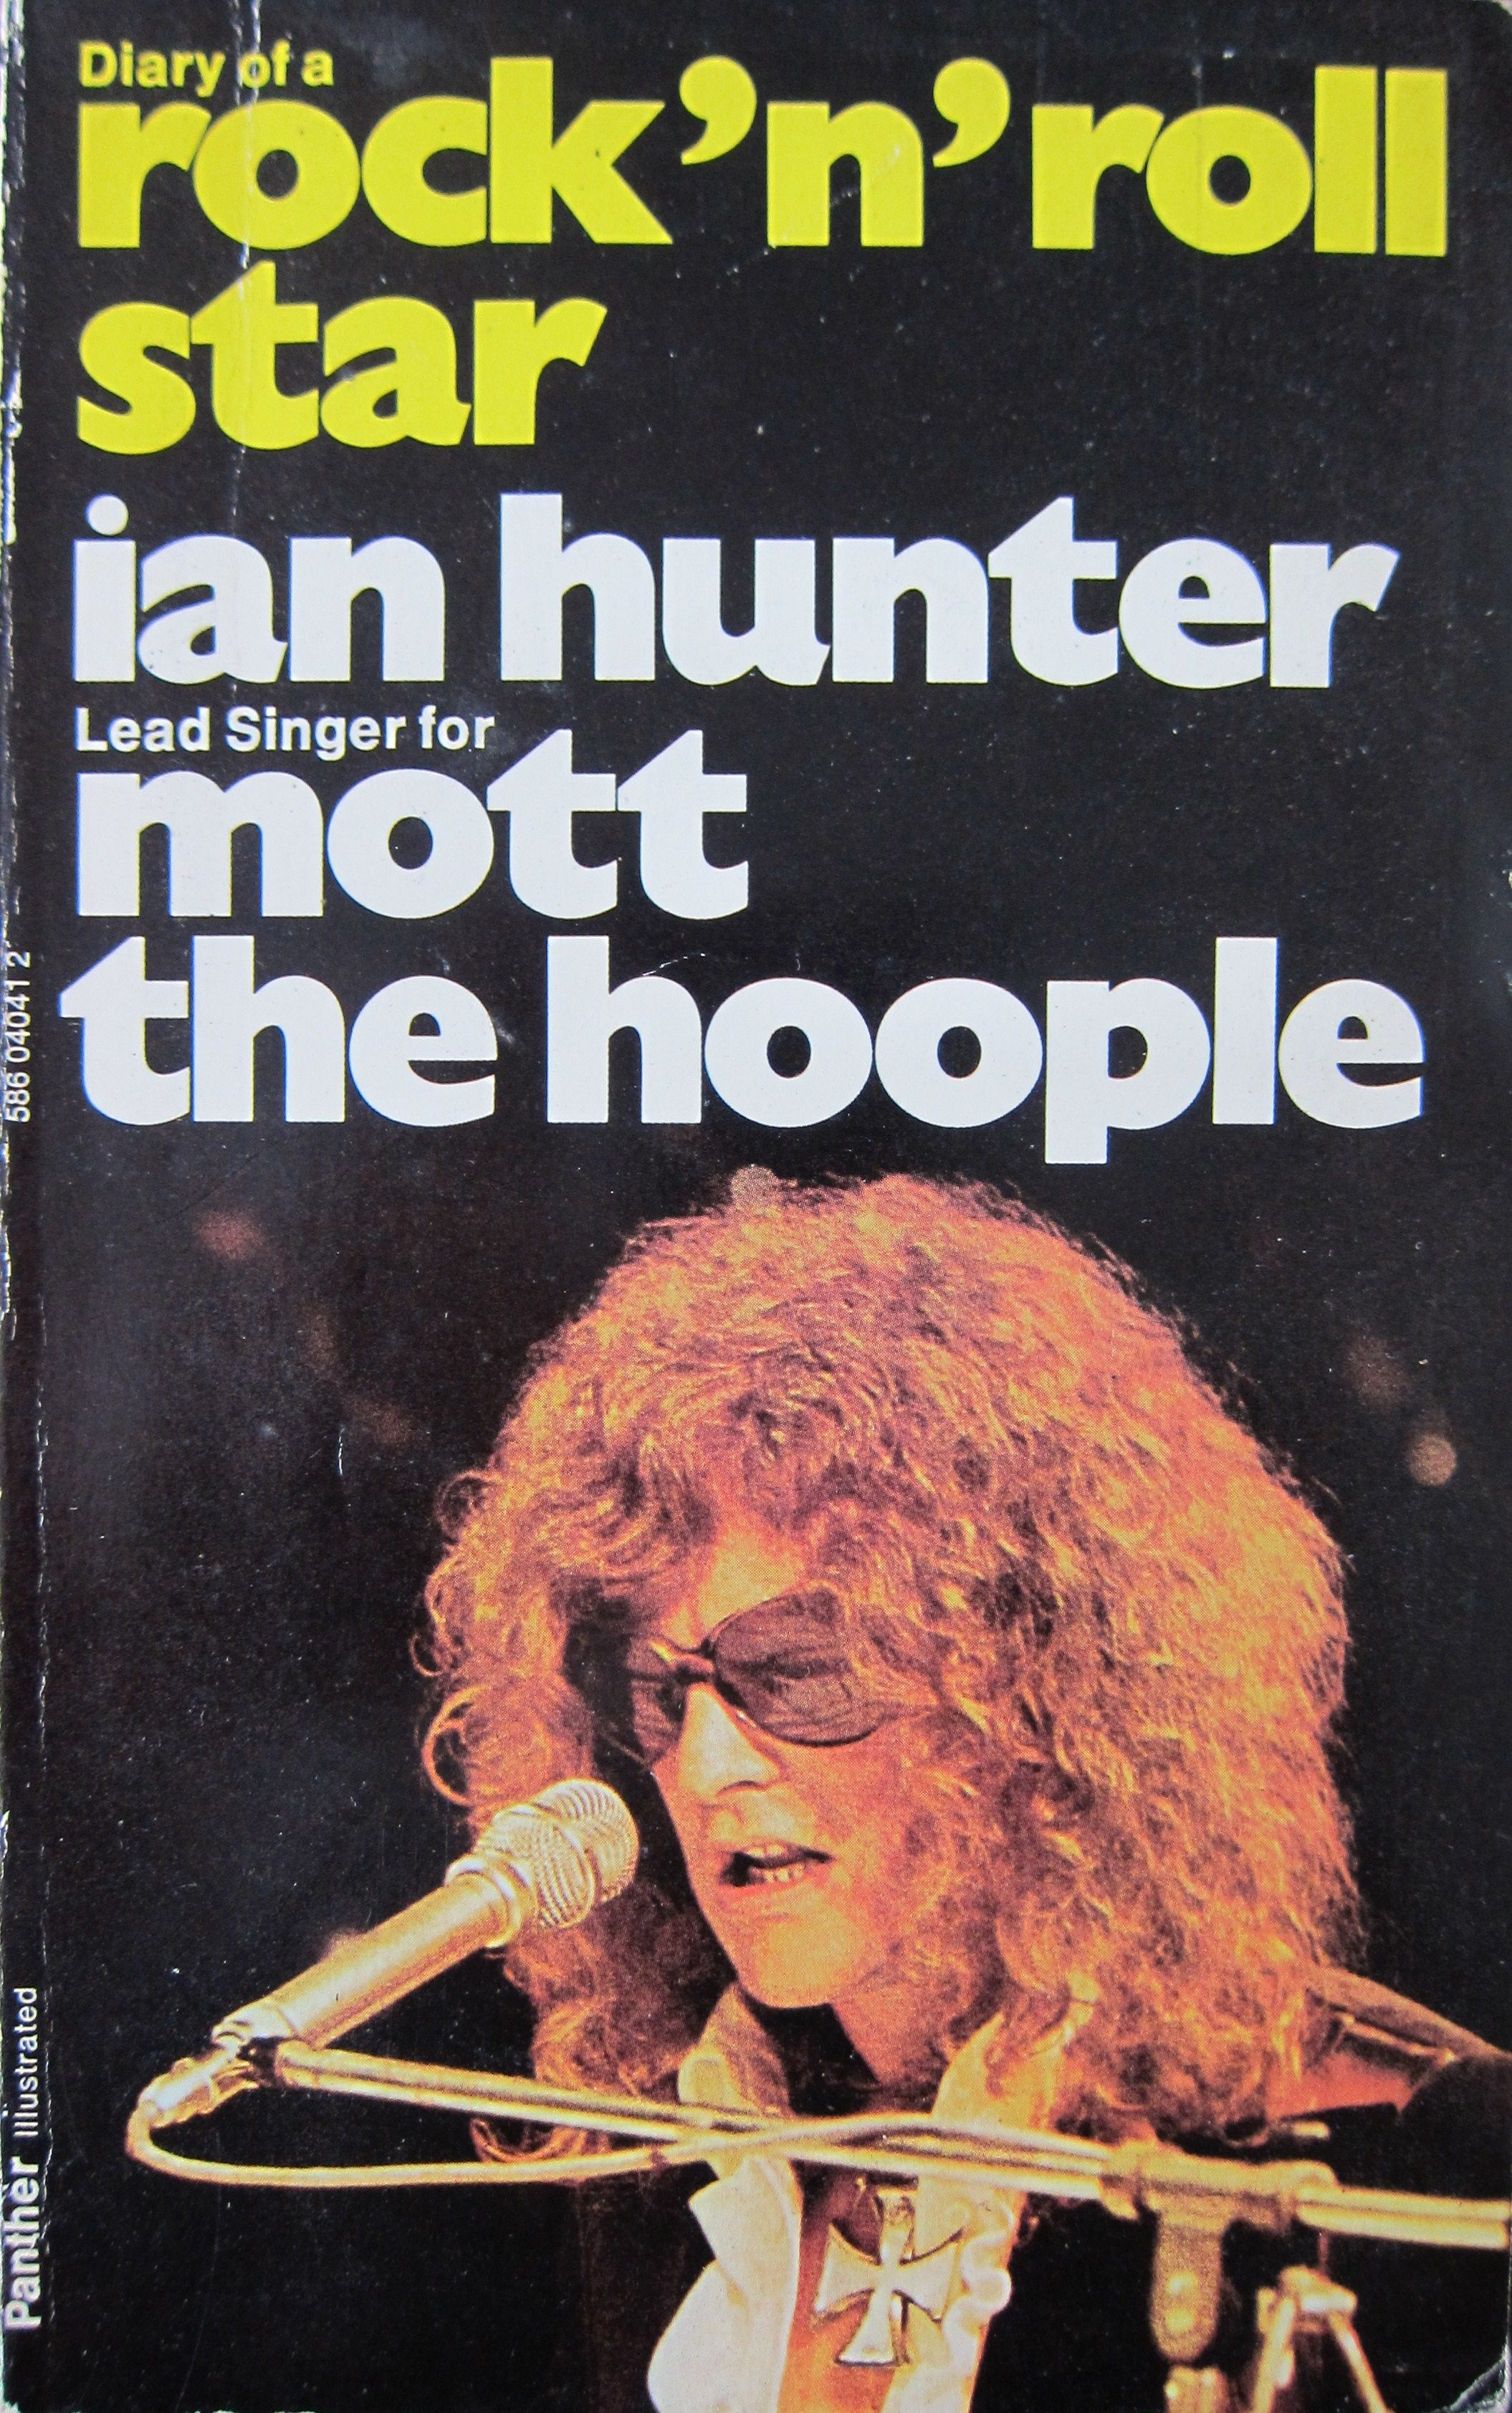 Diary of a rock n roll star Ian Hunter cover